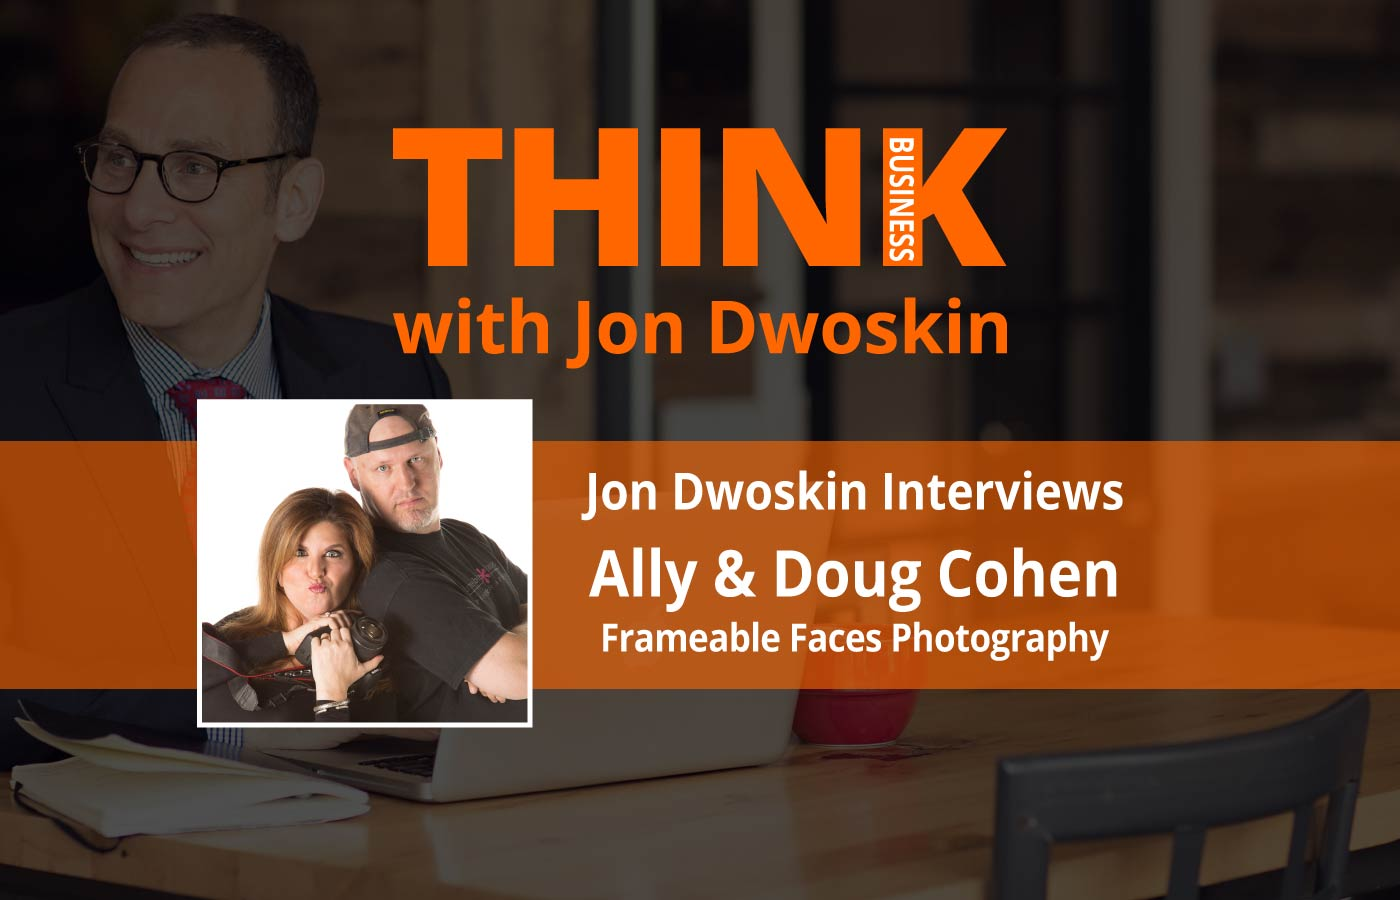 THINK Business: Jon Dwoskin Interviews Ally and Doug Cohen, Frameable Faces Photography